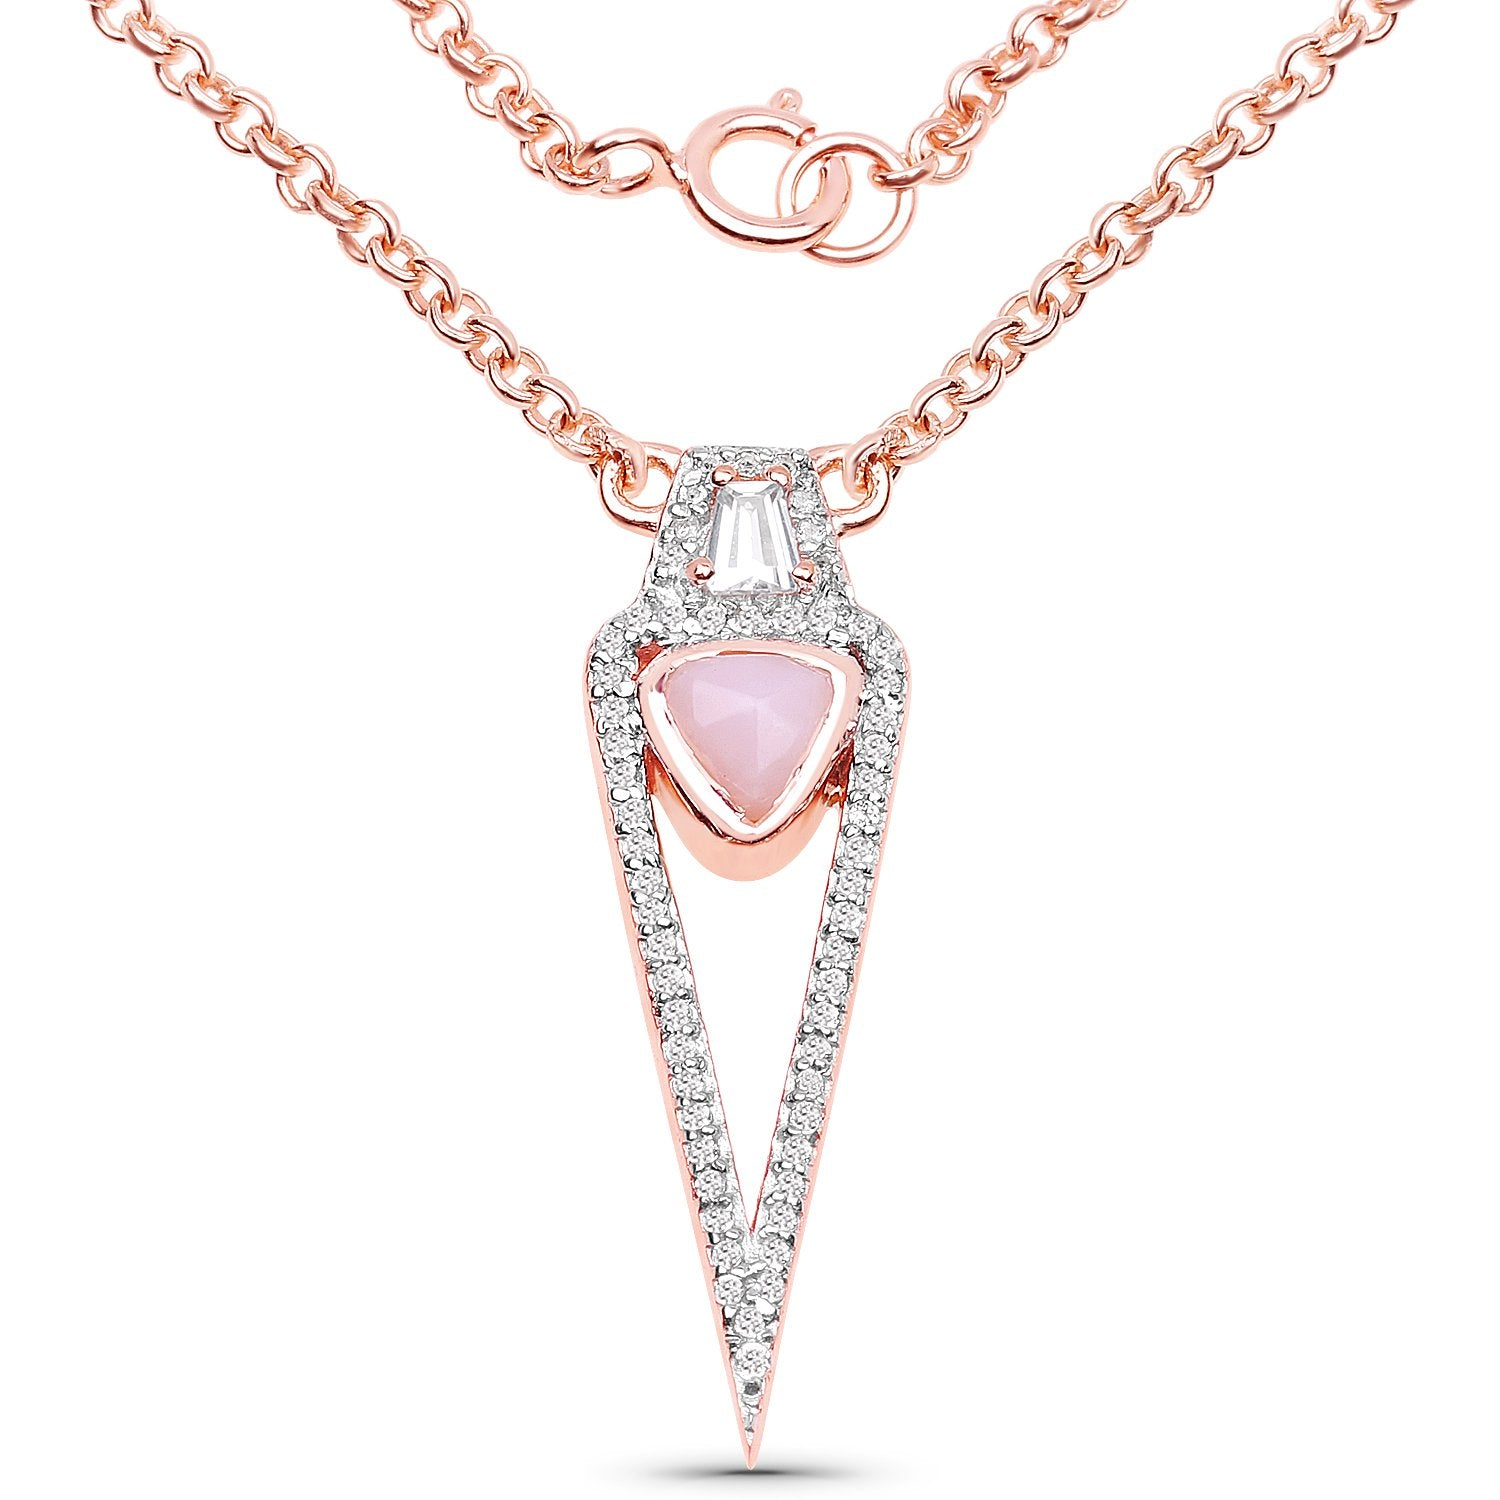 LoveHuang 0.69 Carats Genuine Pink Opal and White Topaz Necklace Solid .925 Sterling Silver With 18KT Rose Gold Plating, 18Inch Chain